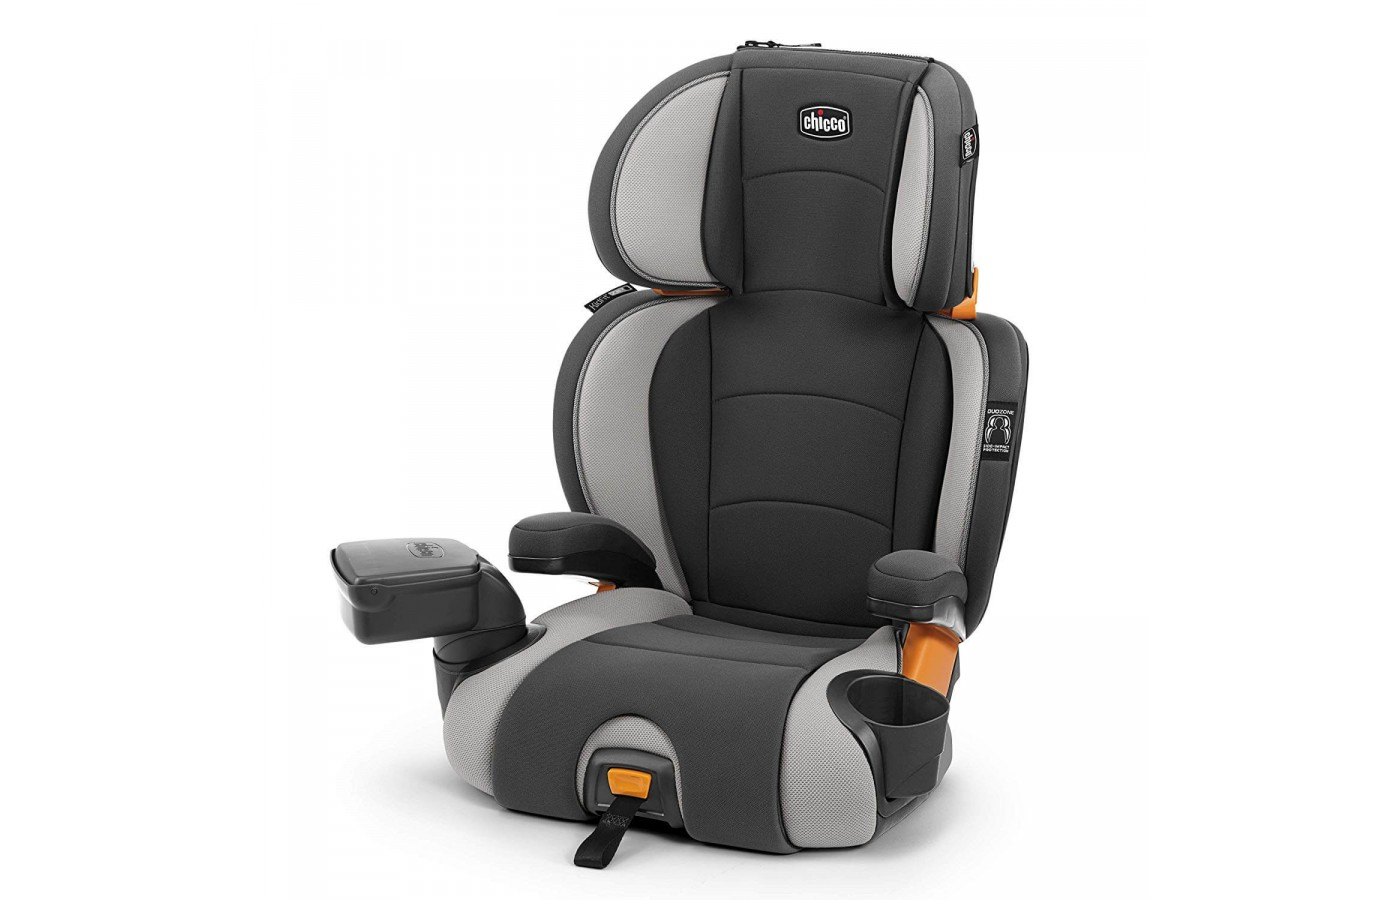 The seat can be used in high-back and backless modes